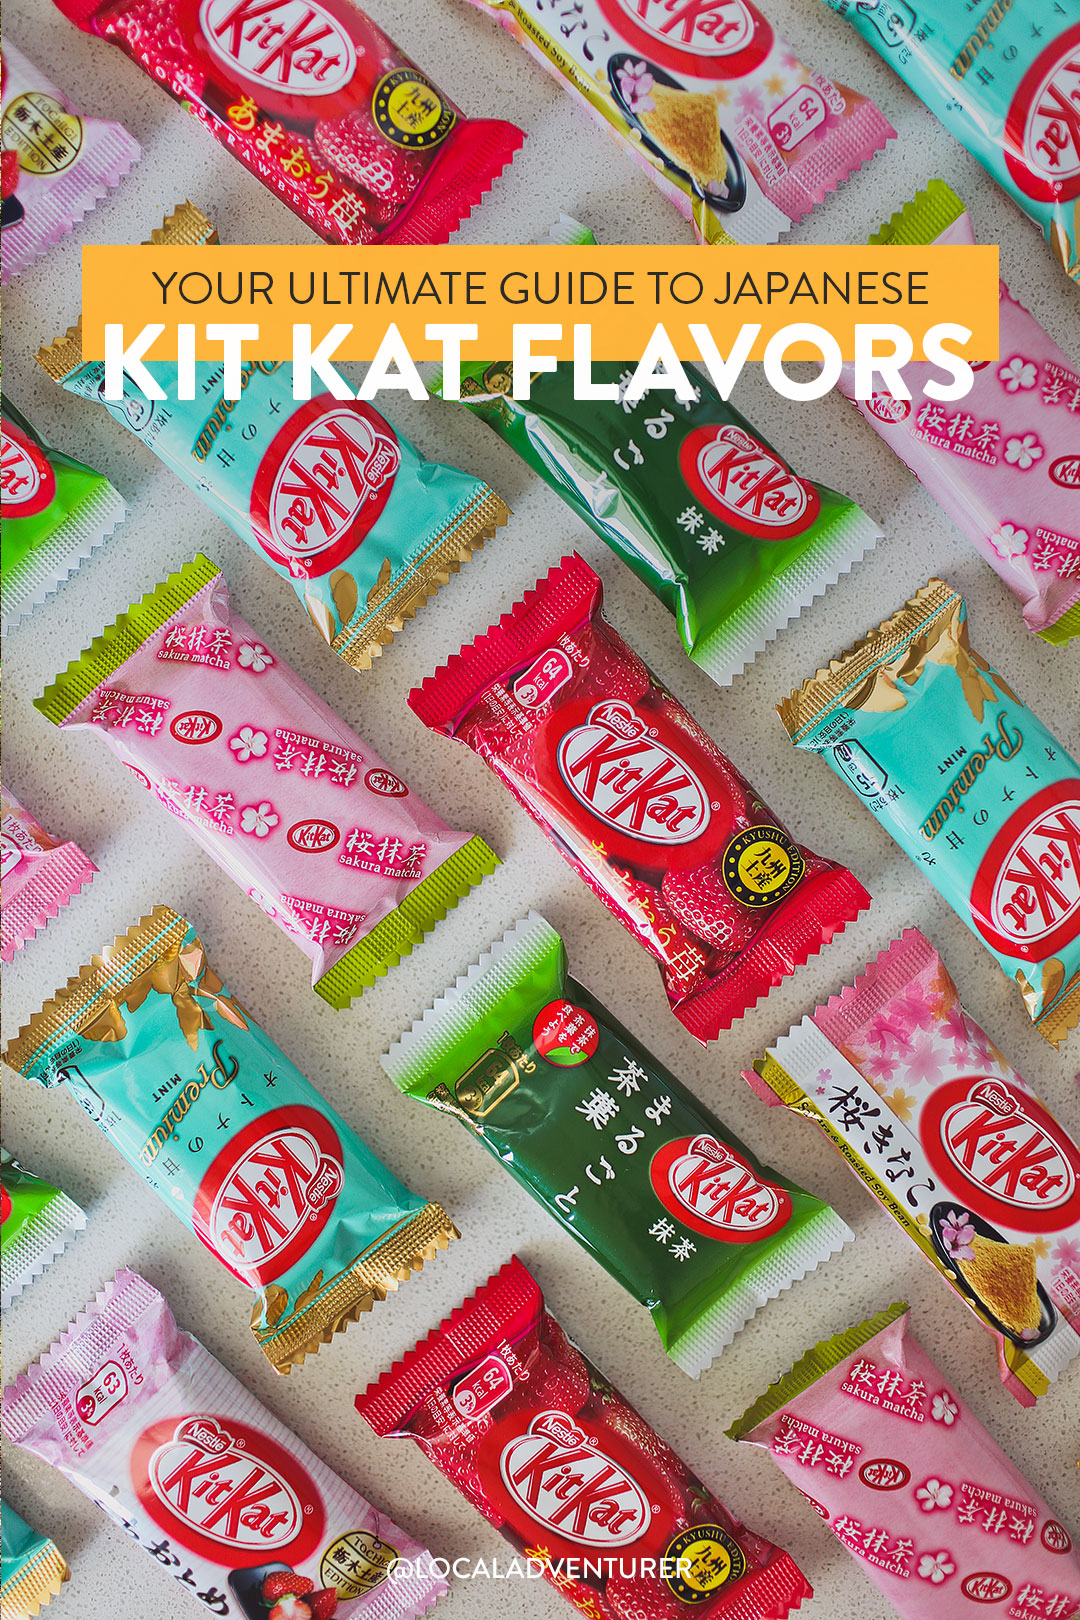 list of kit kat flavors in japan